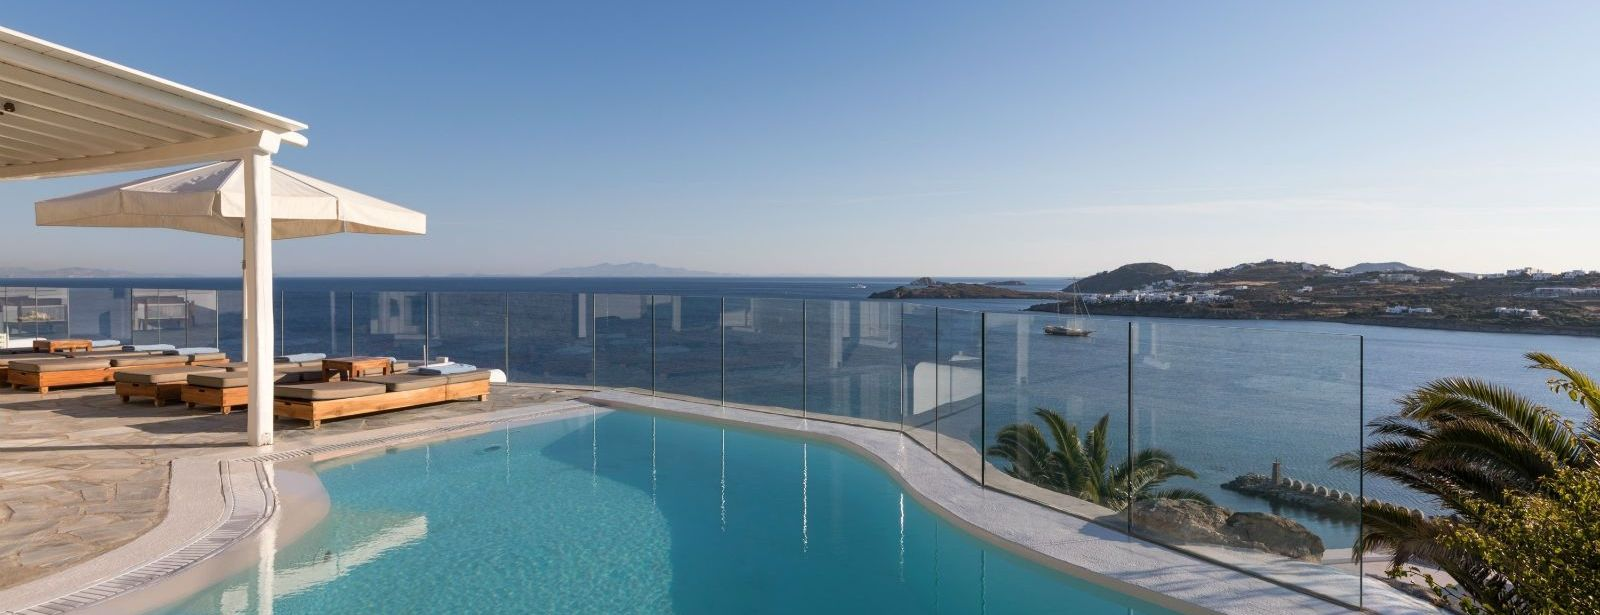 Villa Lapis Lazuli Pool Sea view Santa Marina Resort Mykonos Luxury Hotel